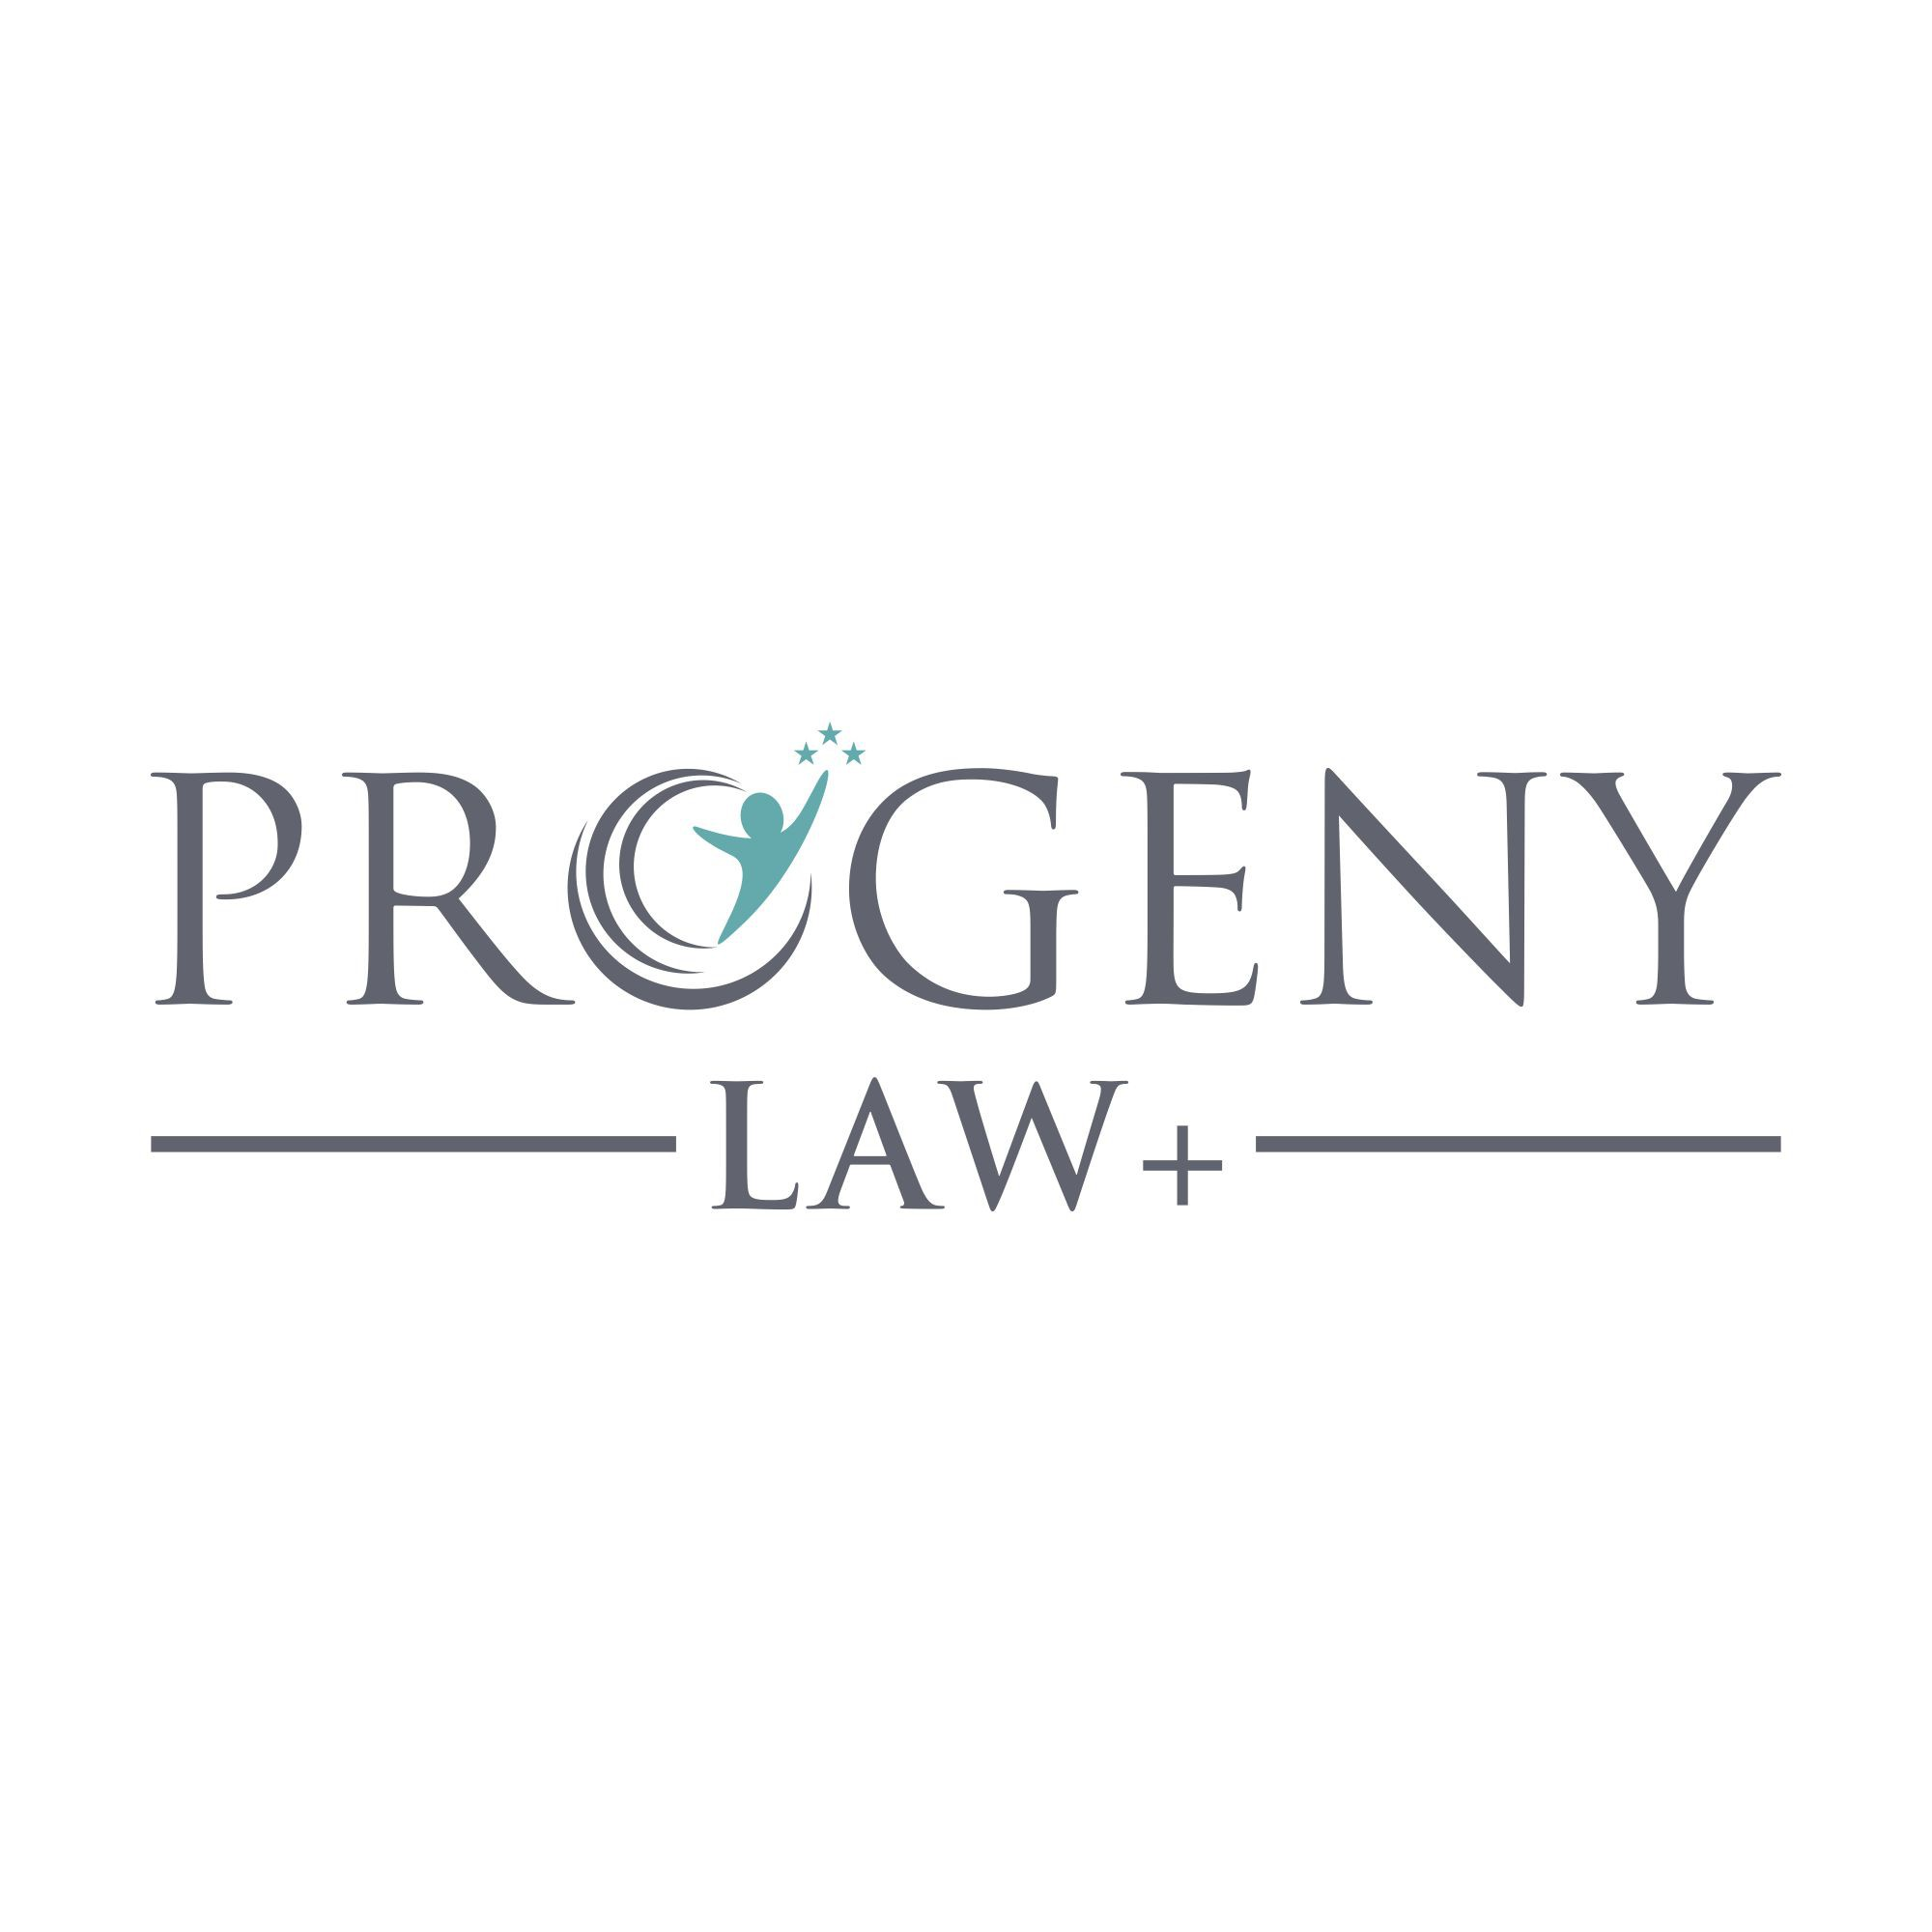 Legal and non-legal Services to grow families (adoption) and improve children's home lives through mediation advocacy.